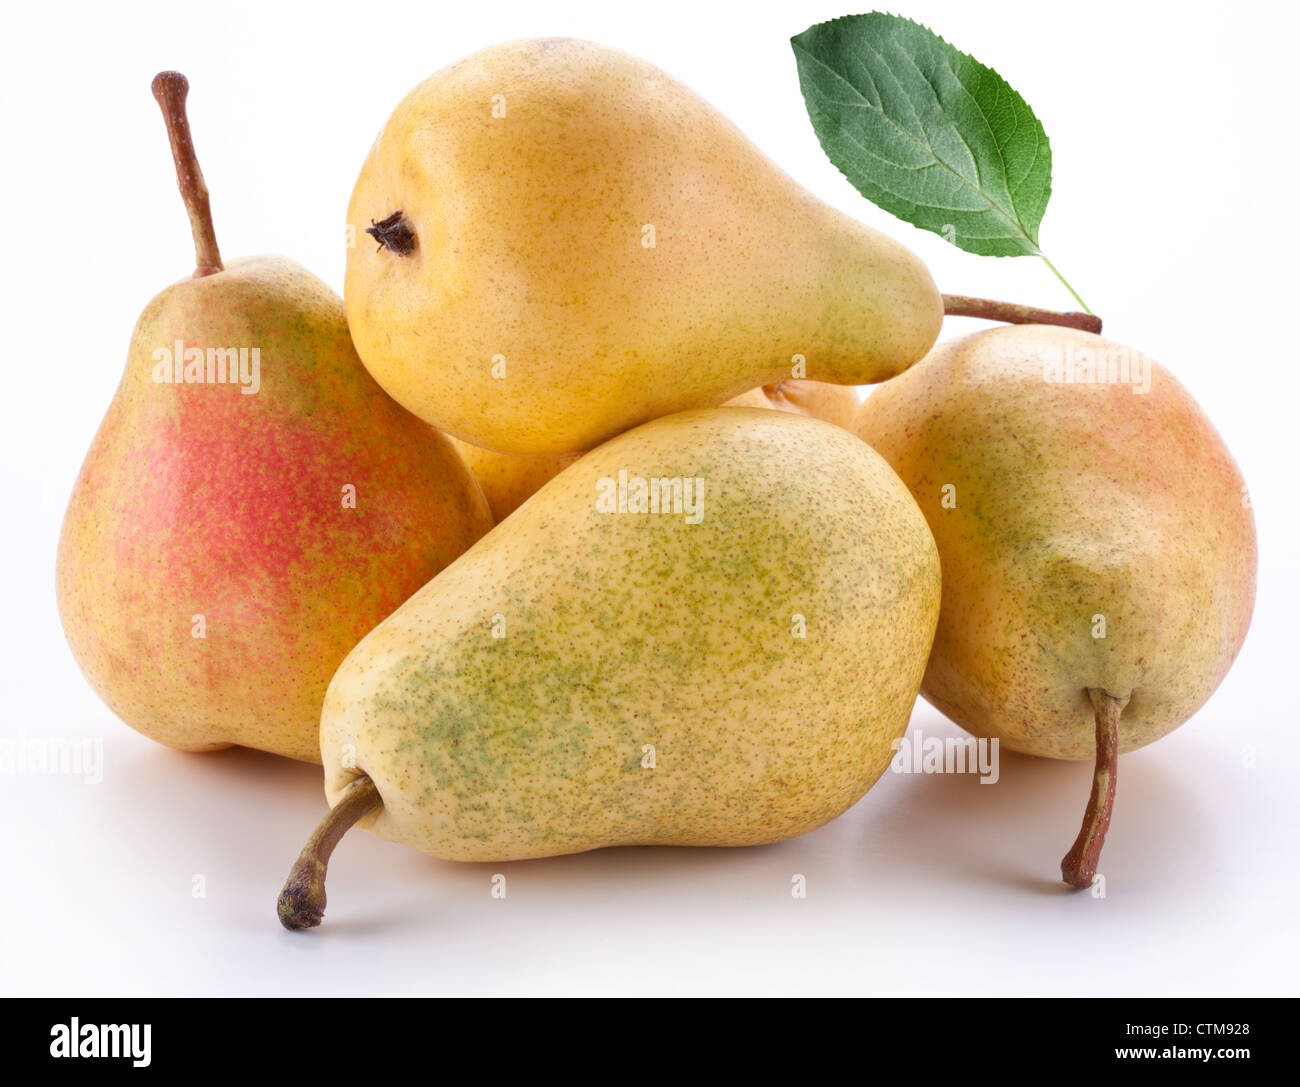 Pears on a white background - Stock Image